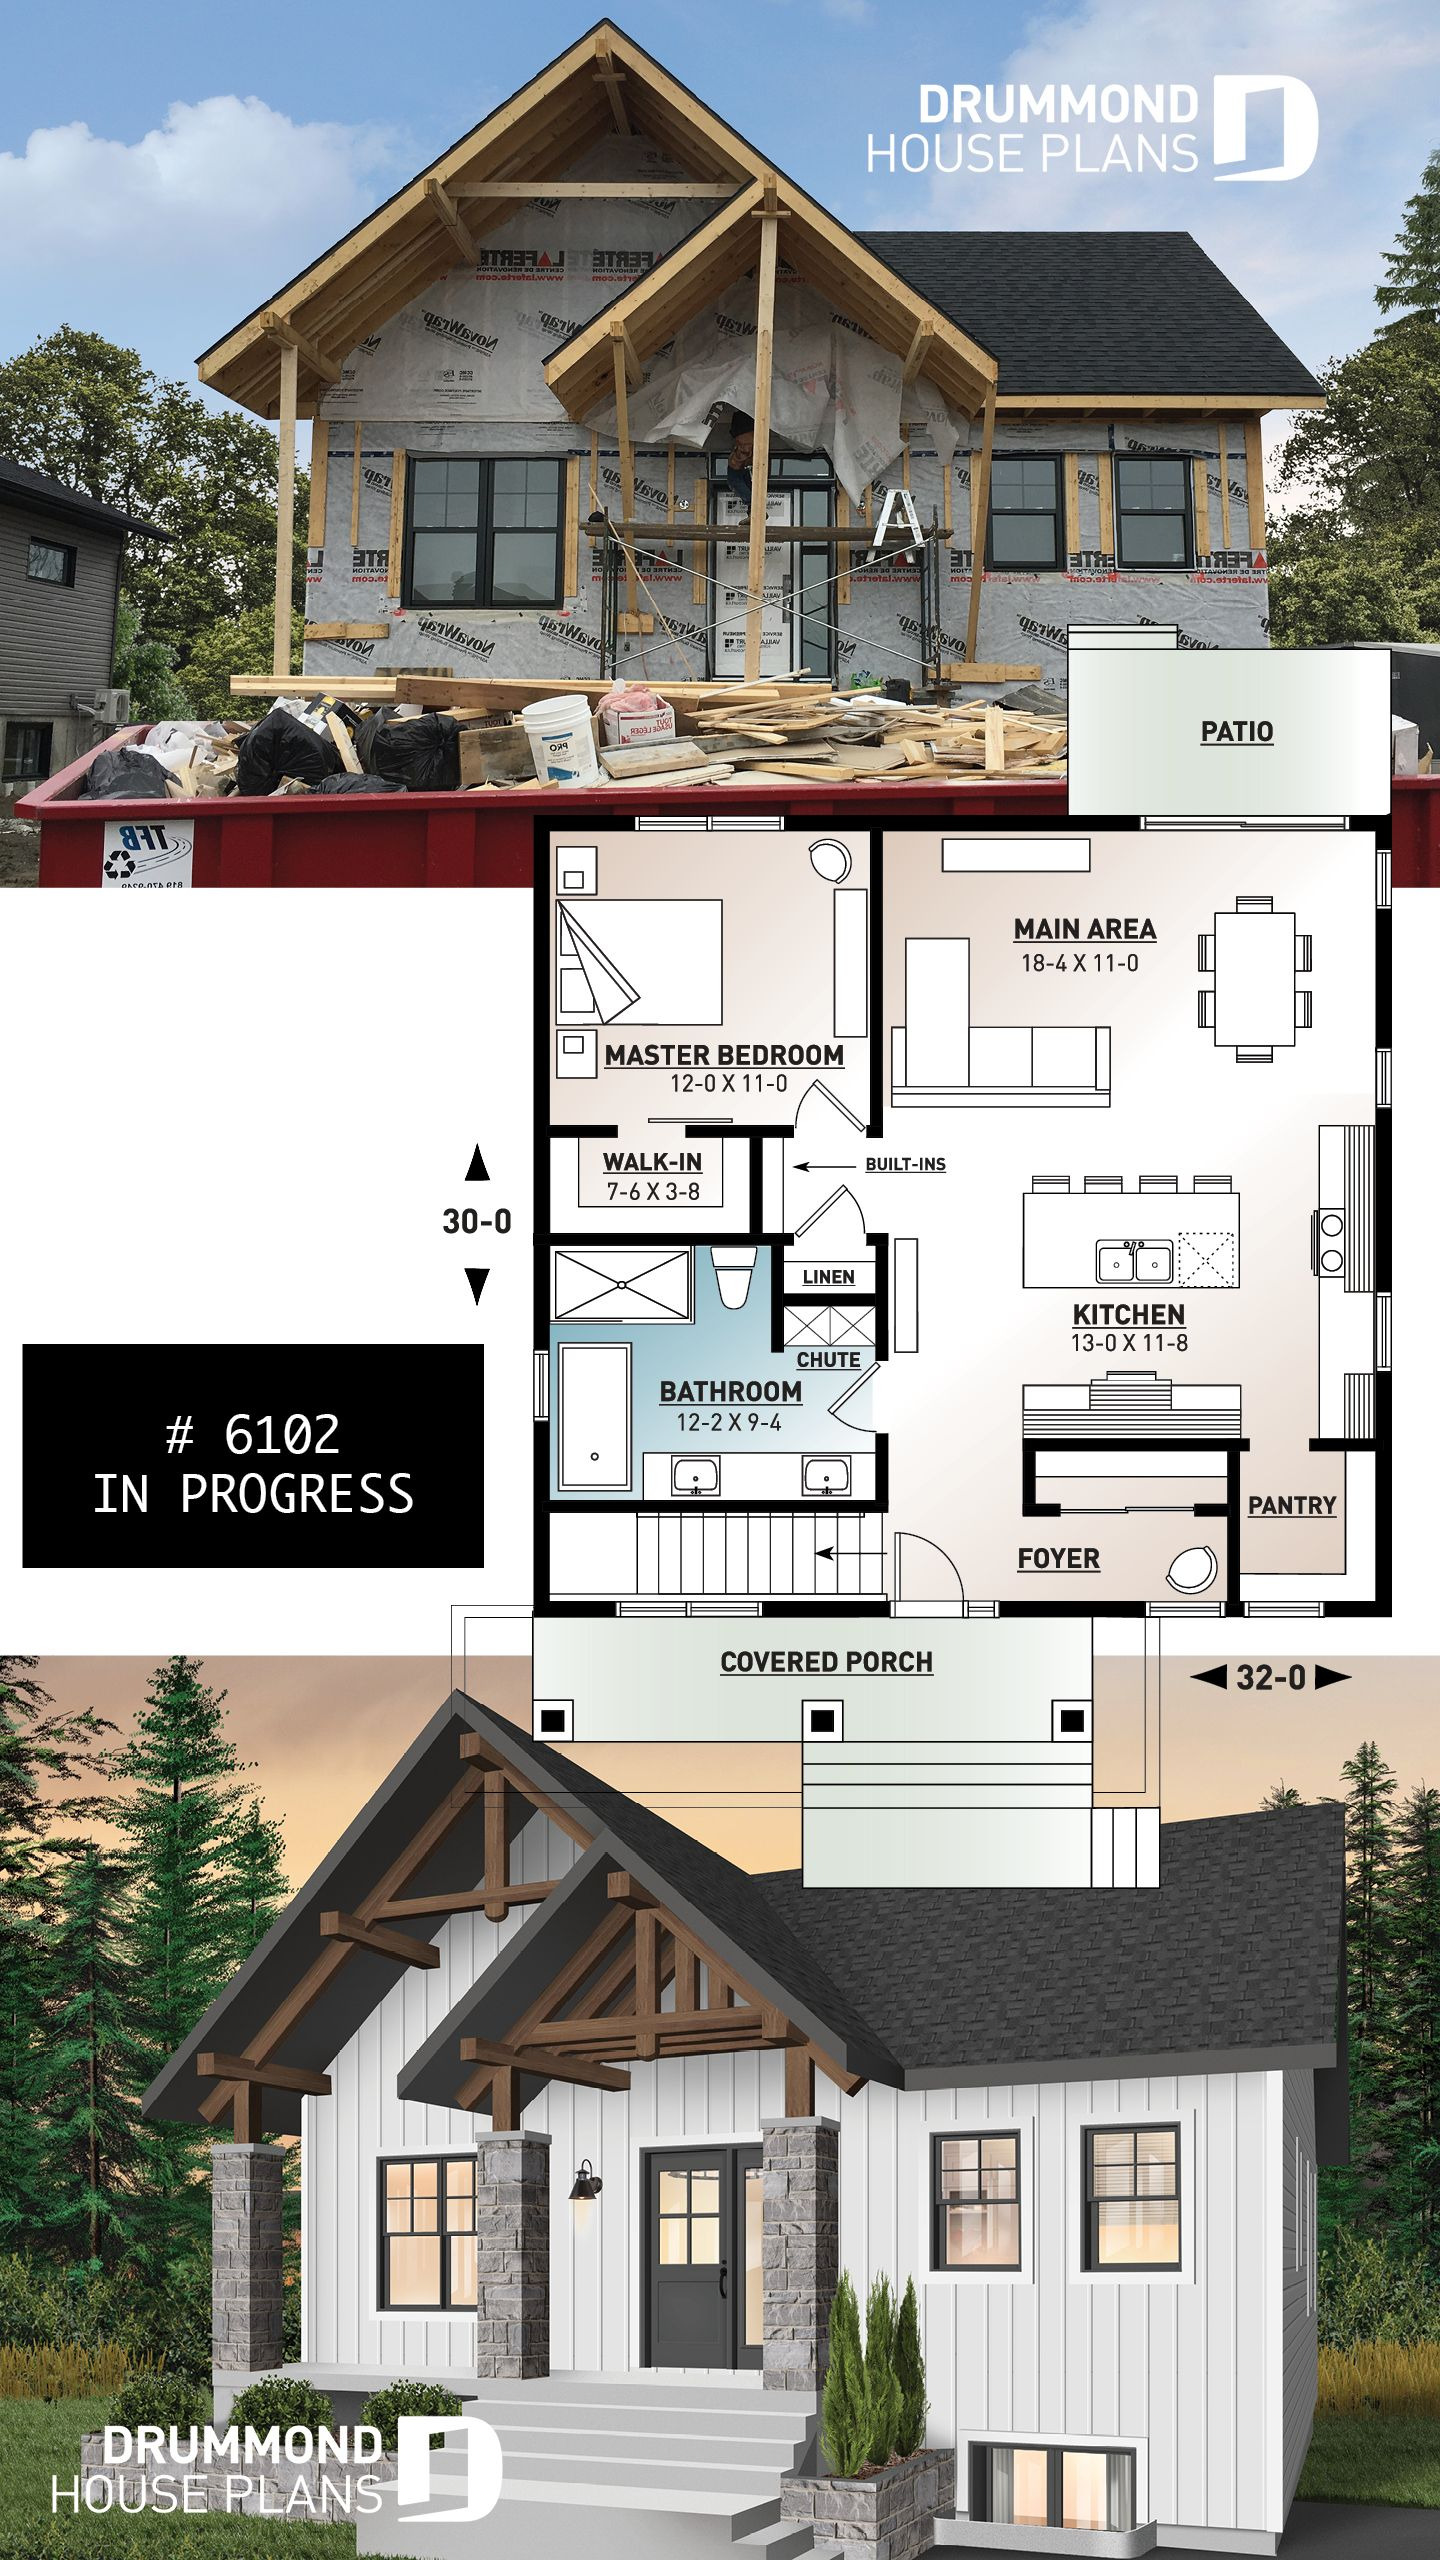 Small House Plans One Story Beautiful House Plan nordika No 6102 with Images